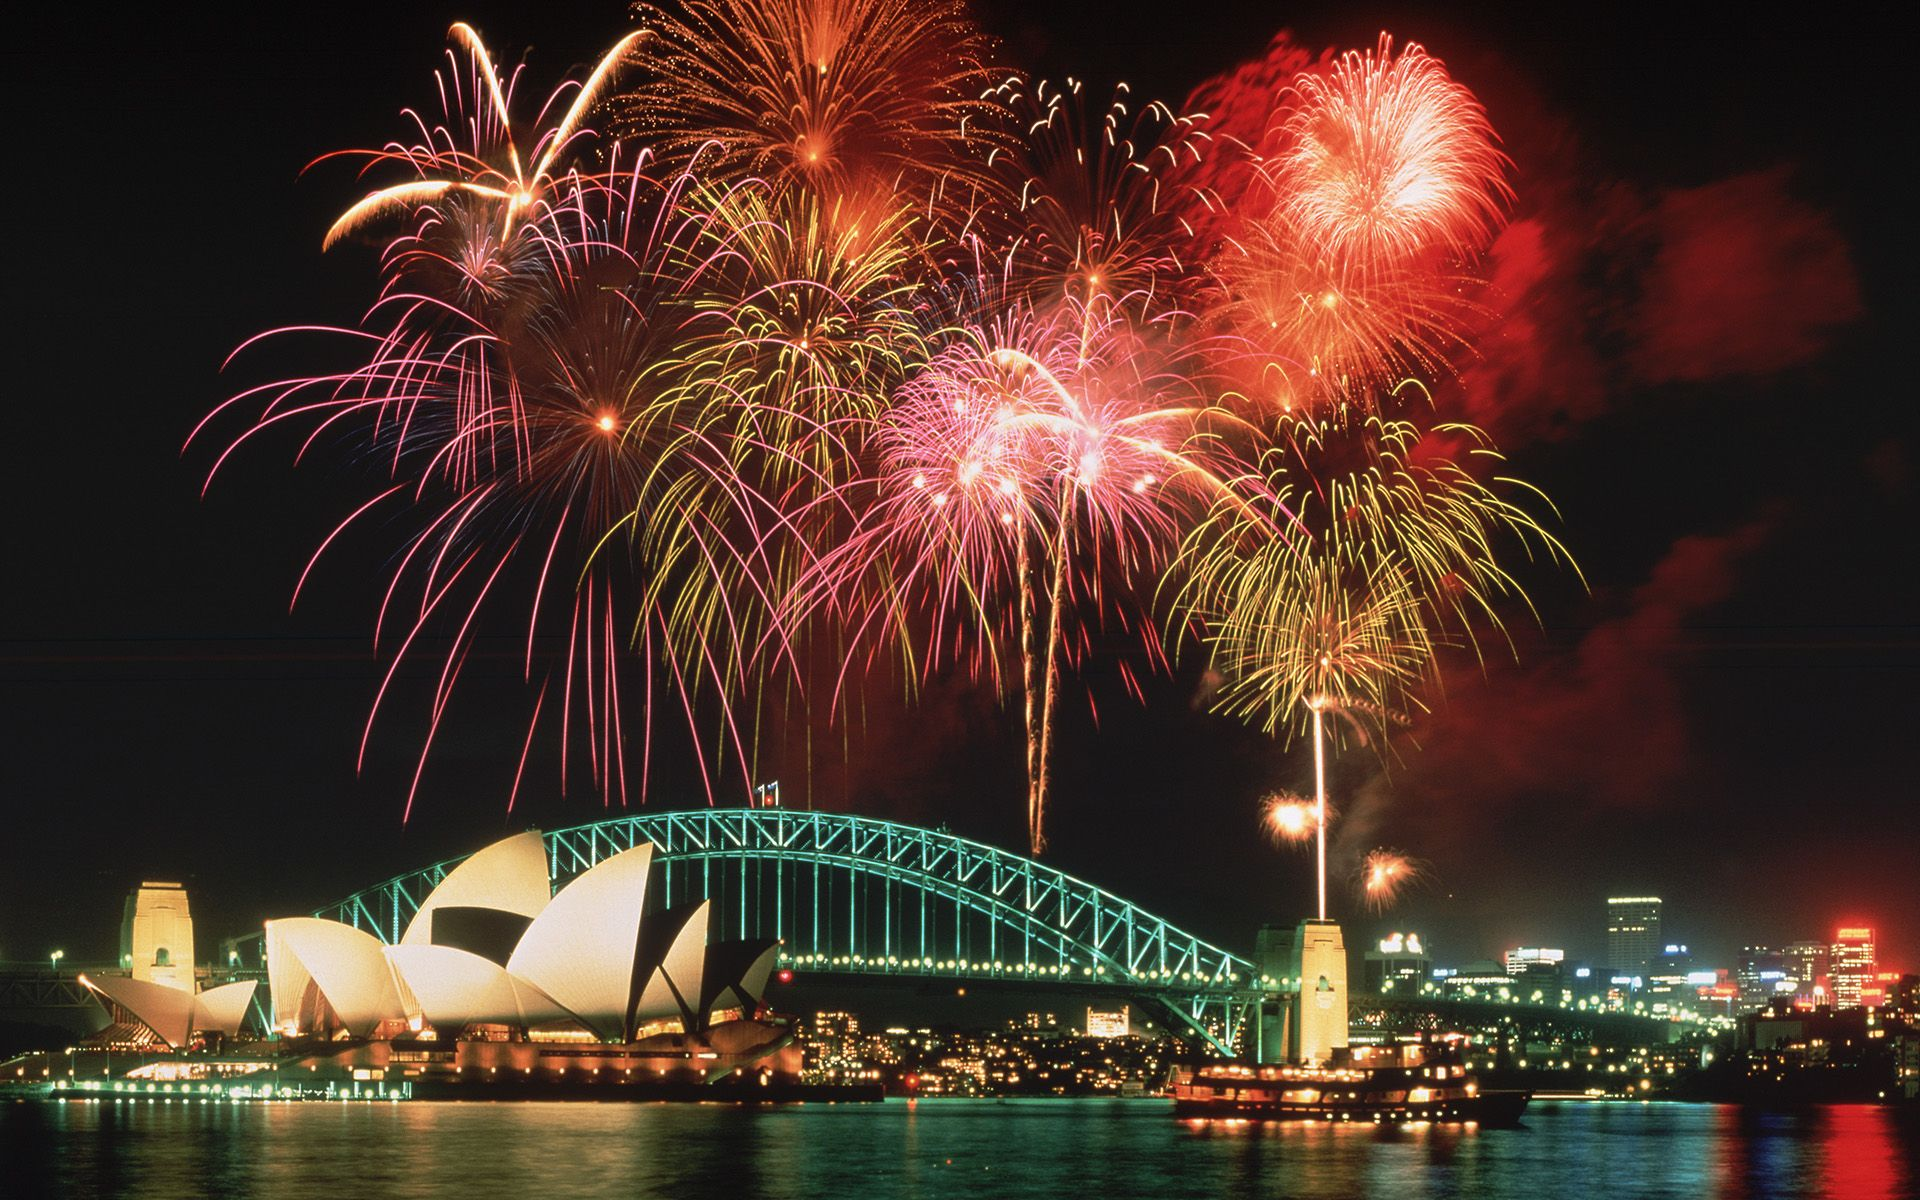 Image detail for Fireworks above the Opera House and